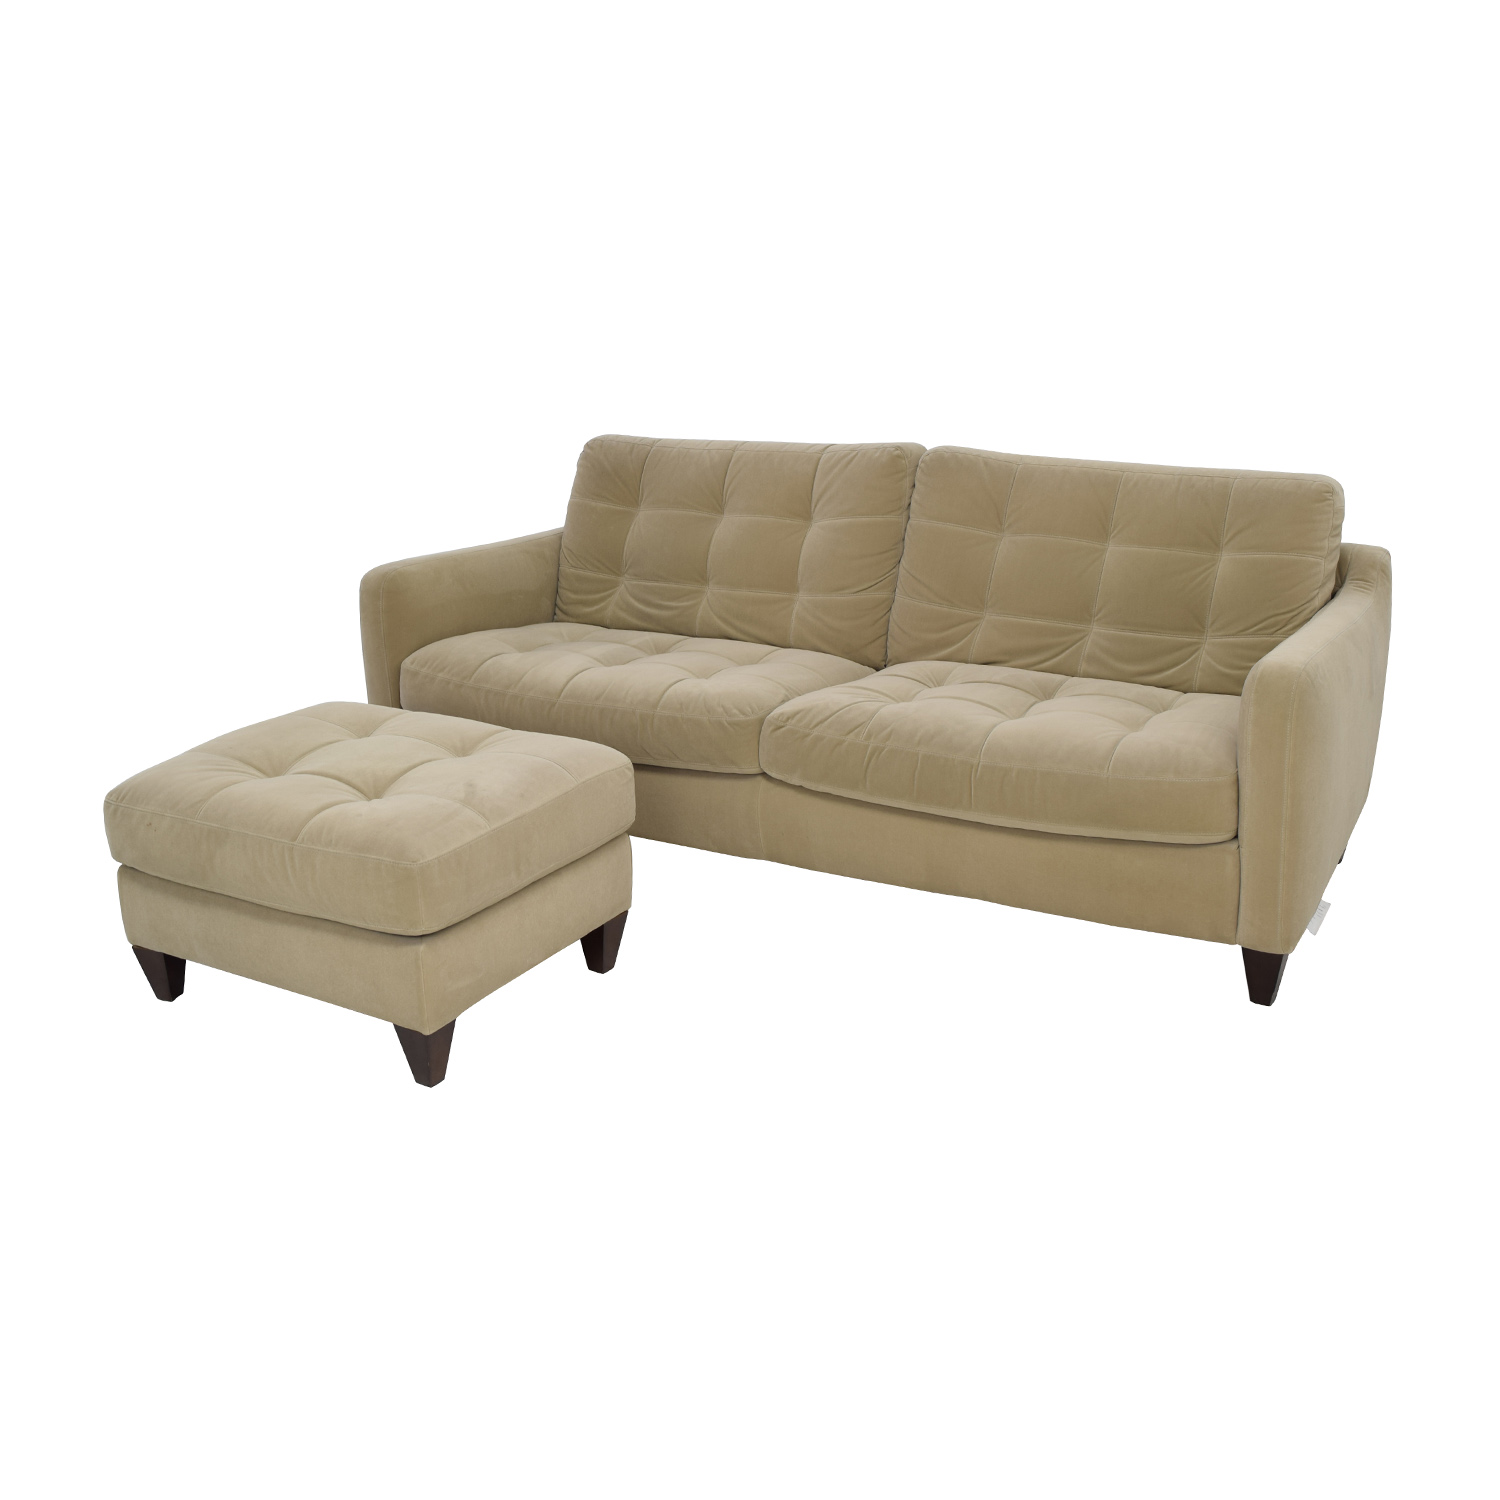 80 off natuzzi natuzzi beige microfiber tufted couch for Classic loveseat